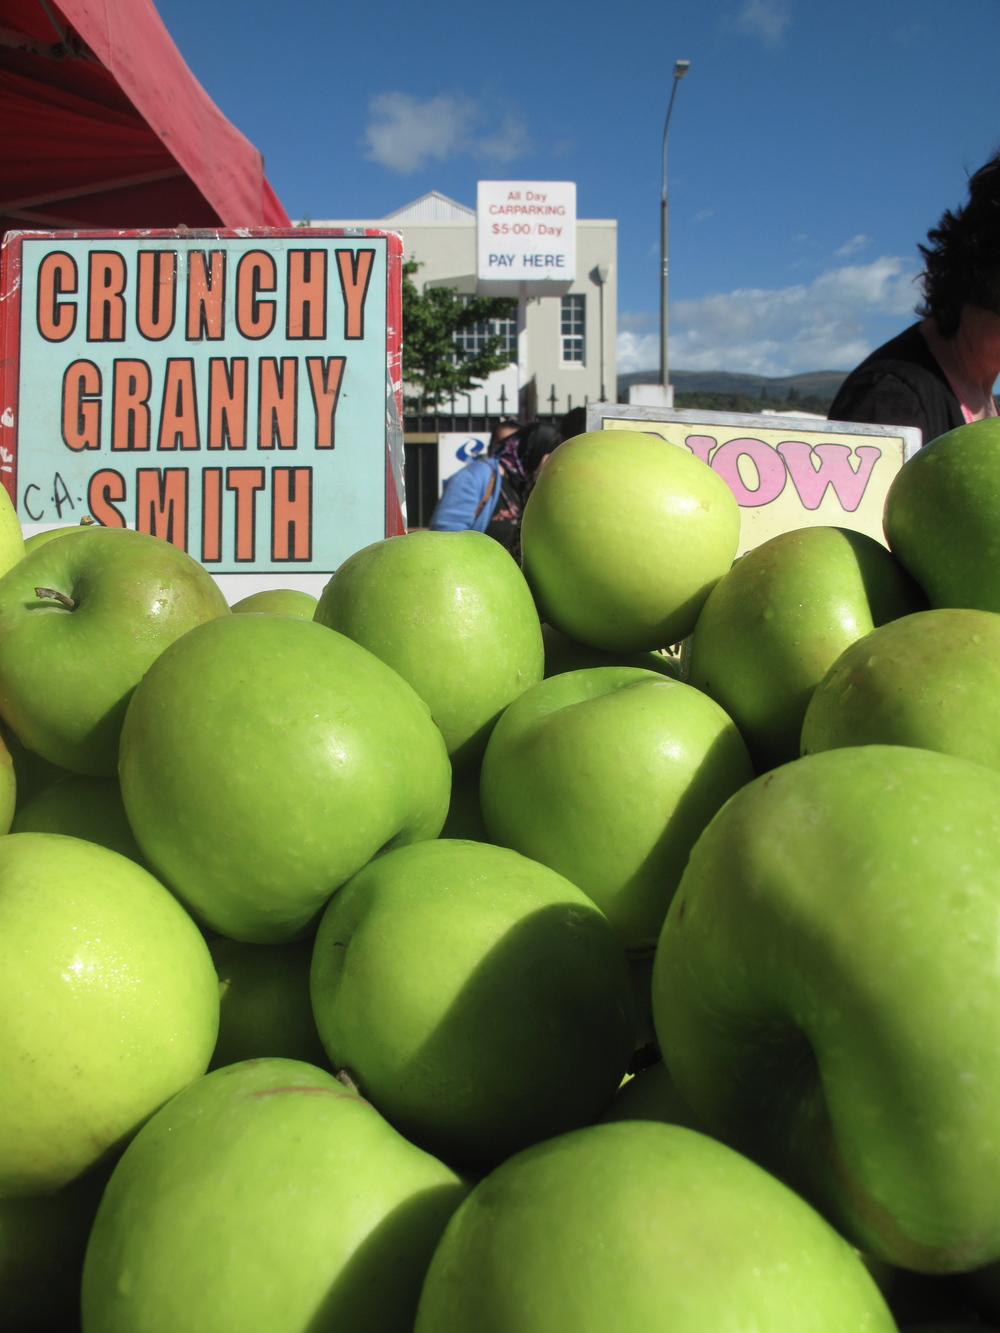 Granny Smith apples at farmer's market NZ